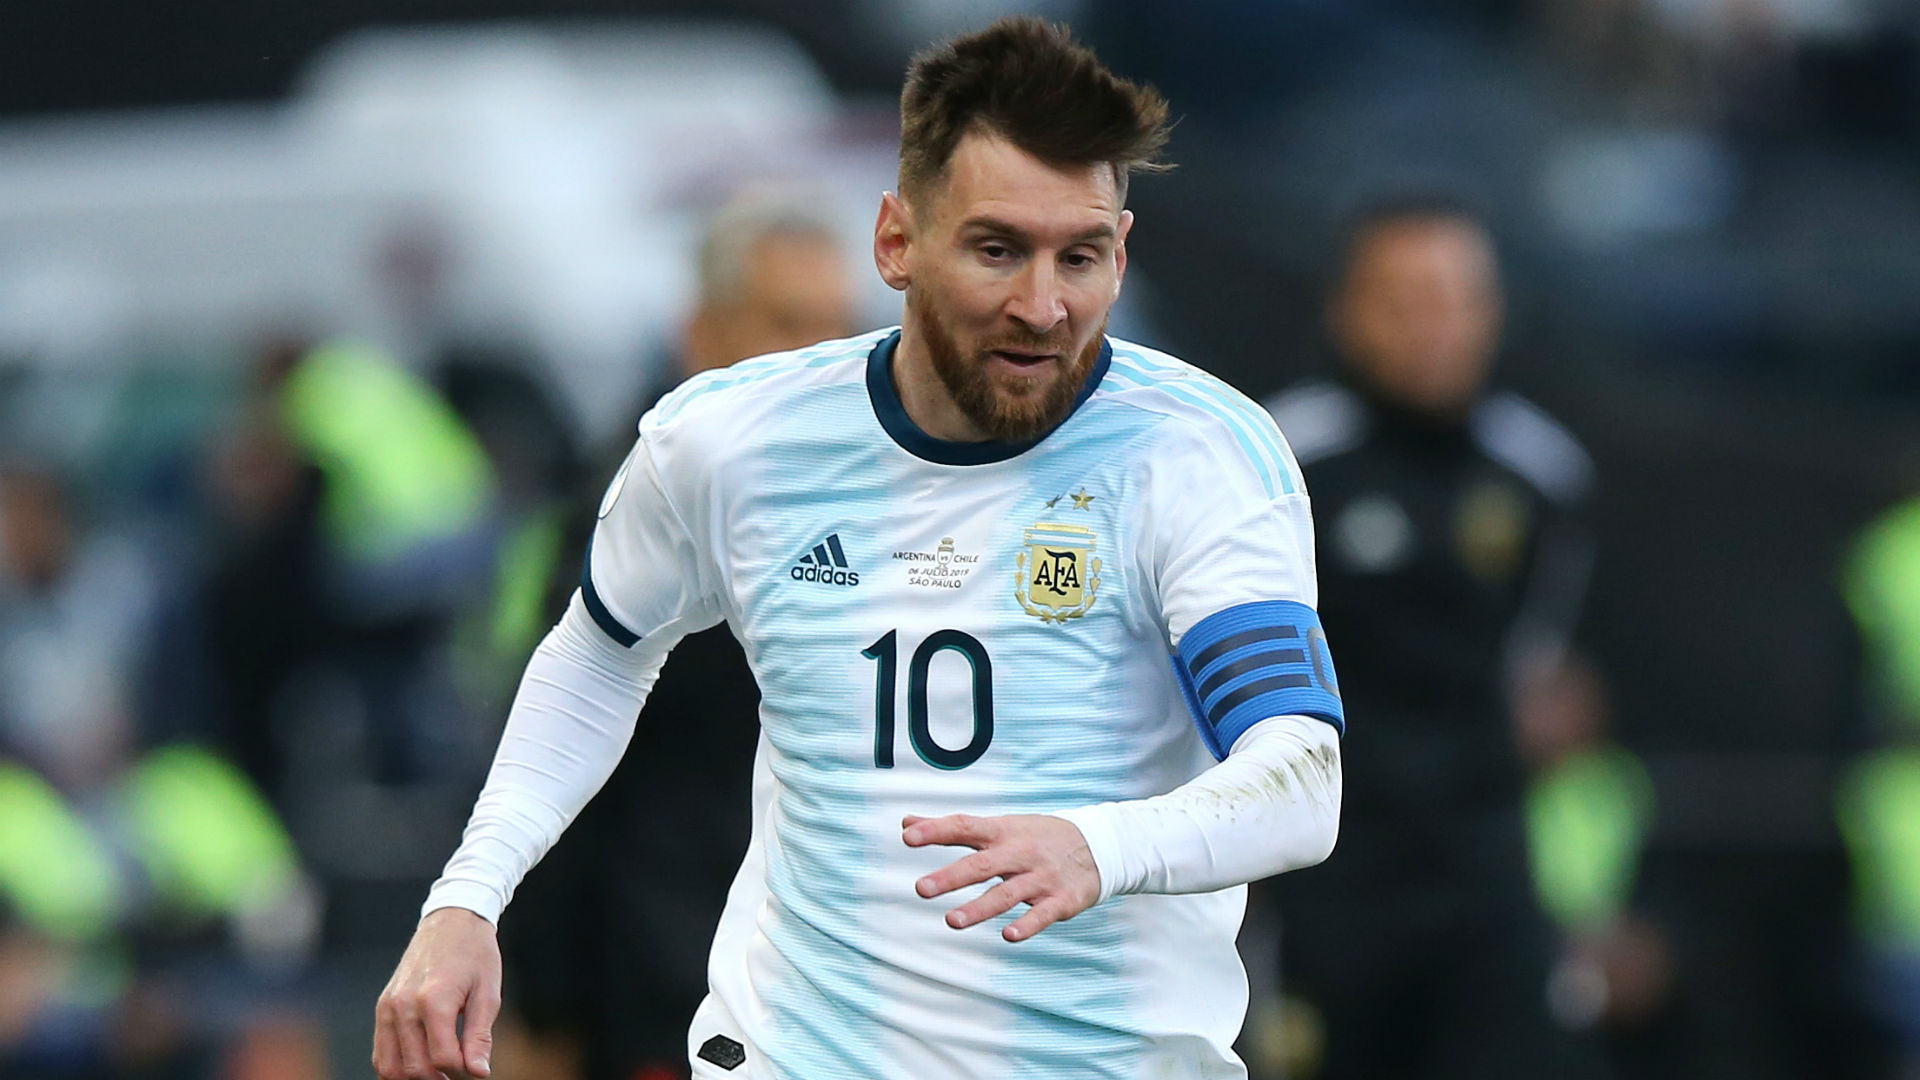 Messi 'happy' and 'serene' ahead of Argentina qualifiers – Scaloni